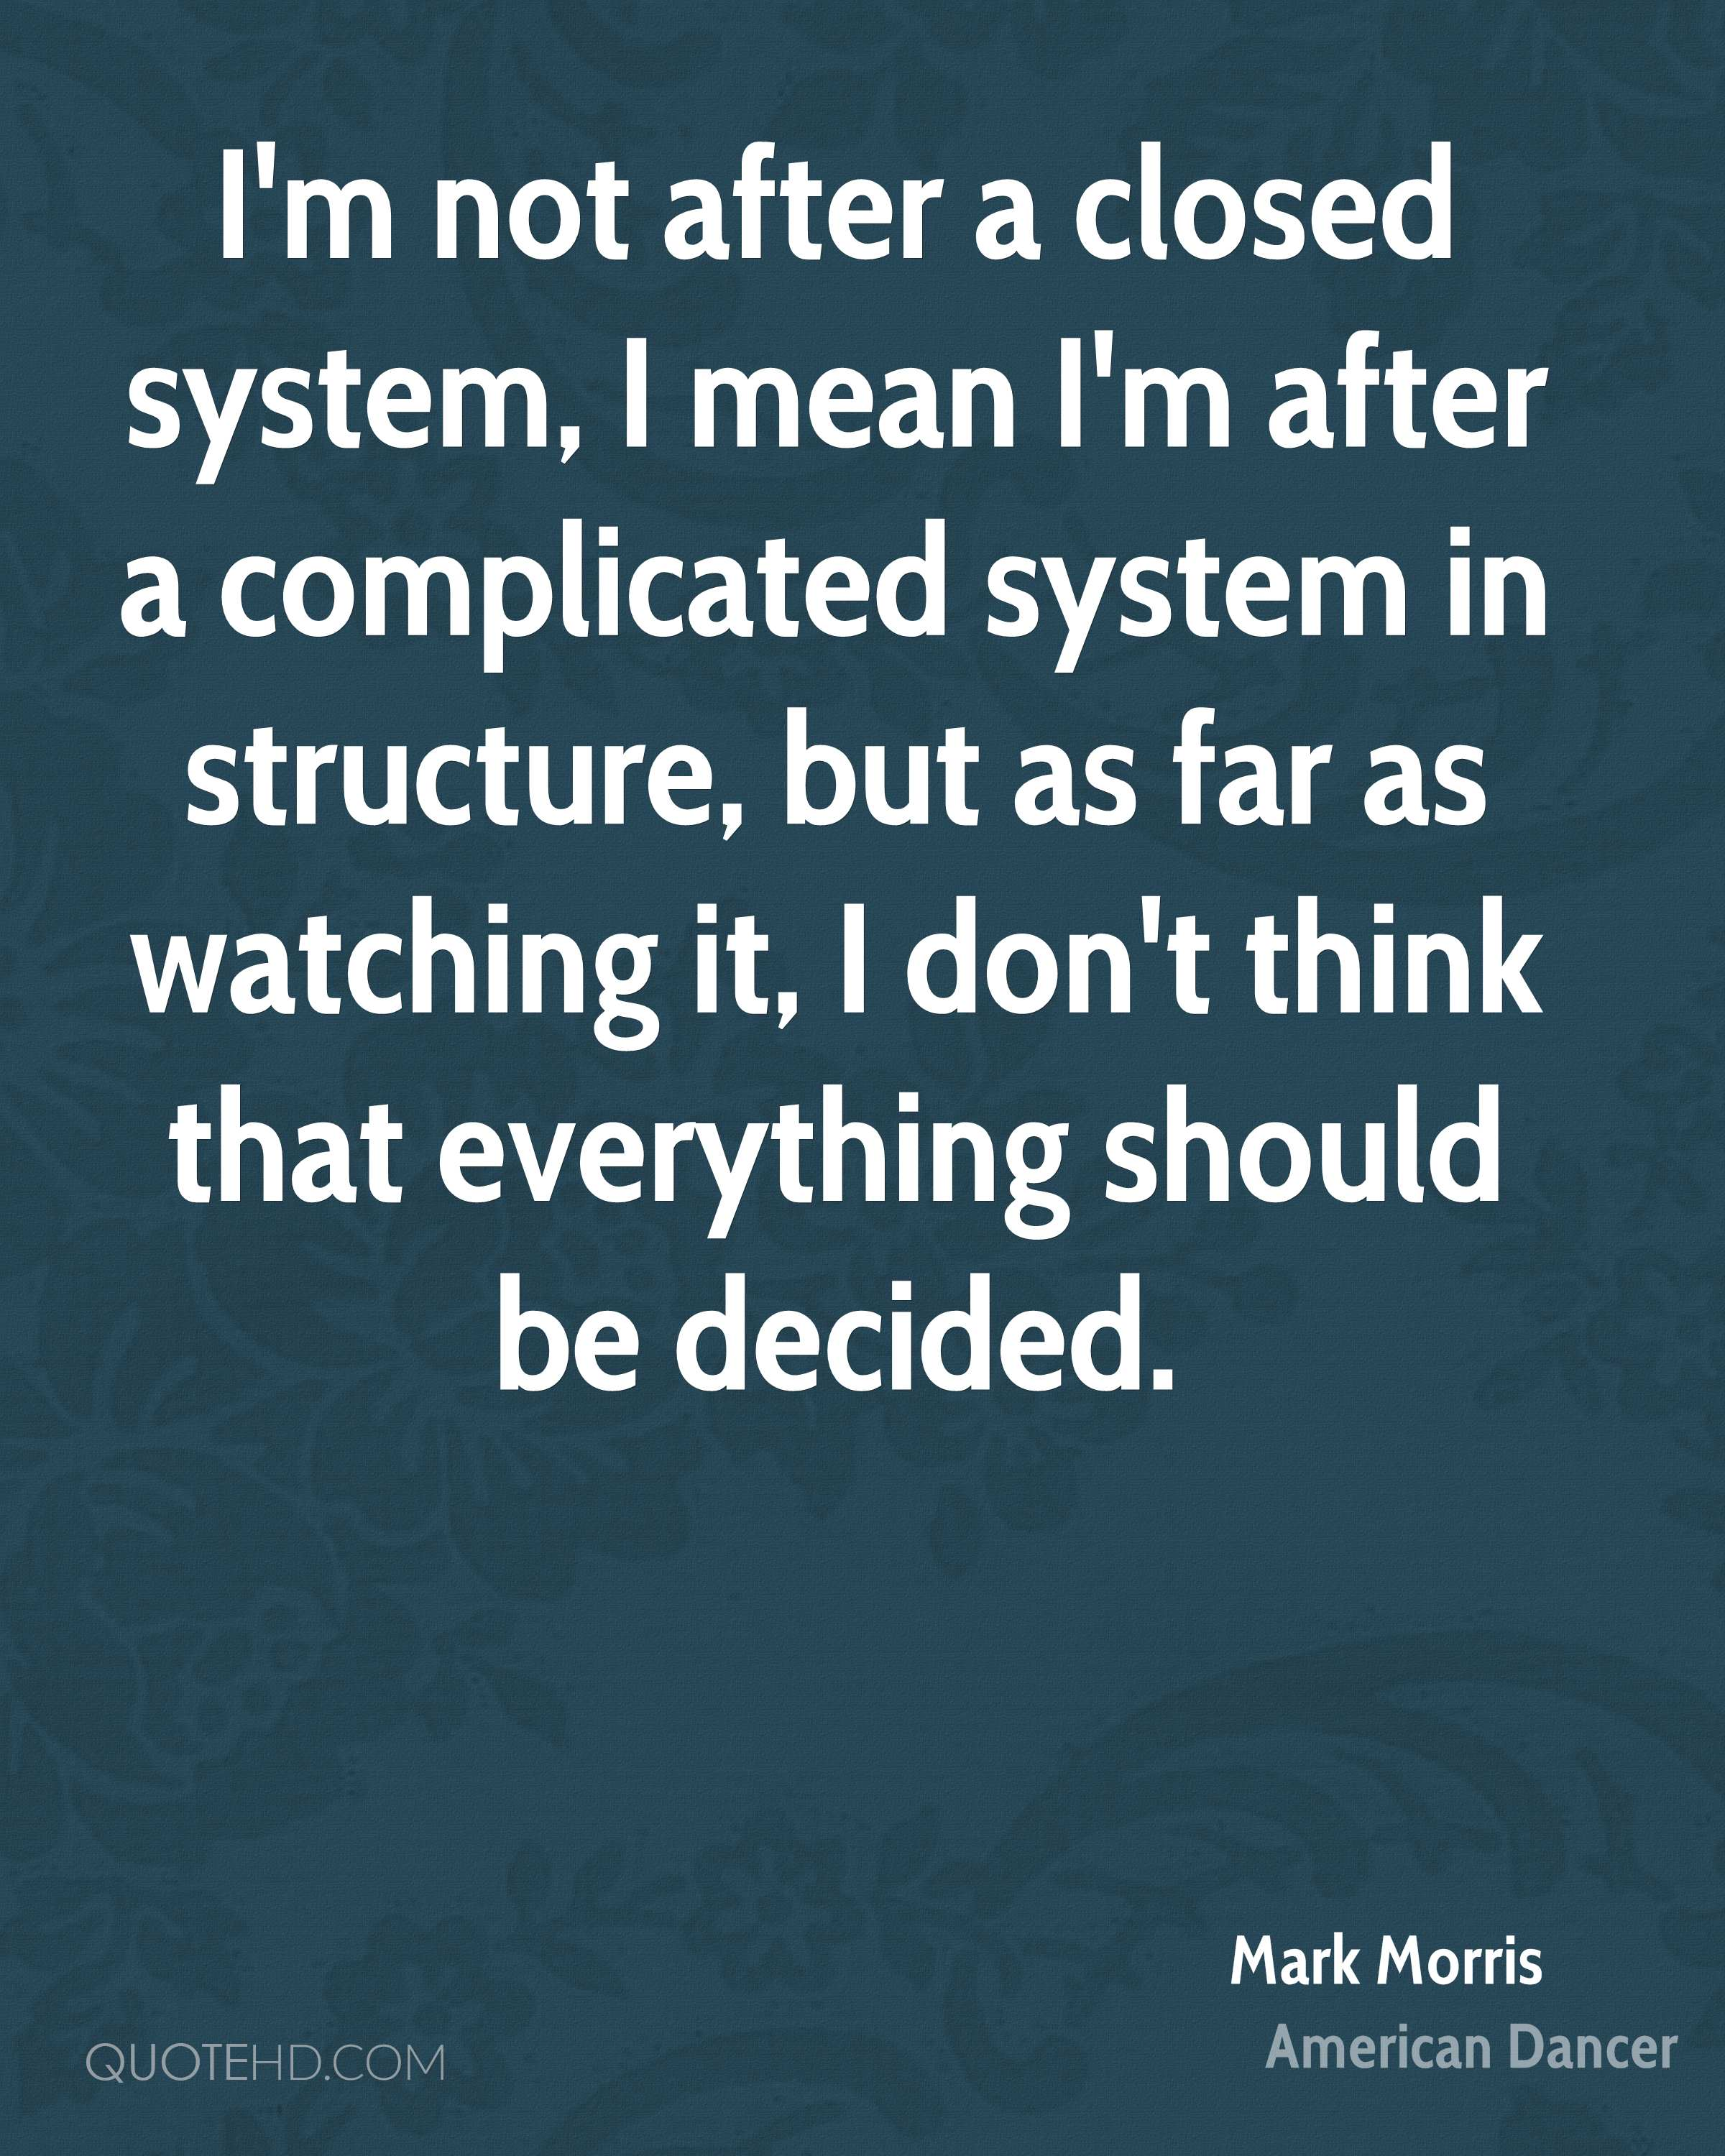 I'm not after a closed system, I mean I'm after a complicated system in structure, but as far as watching it, I don't think that everything should be decided.